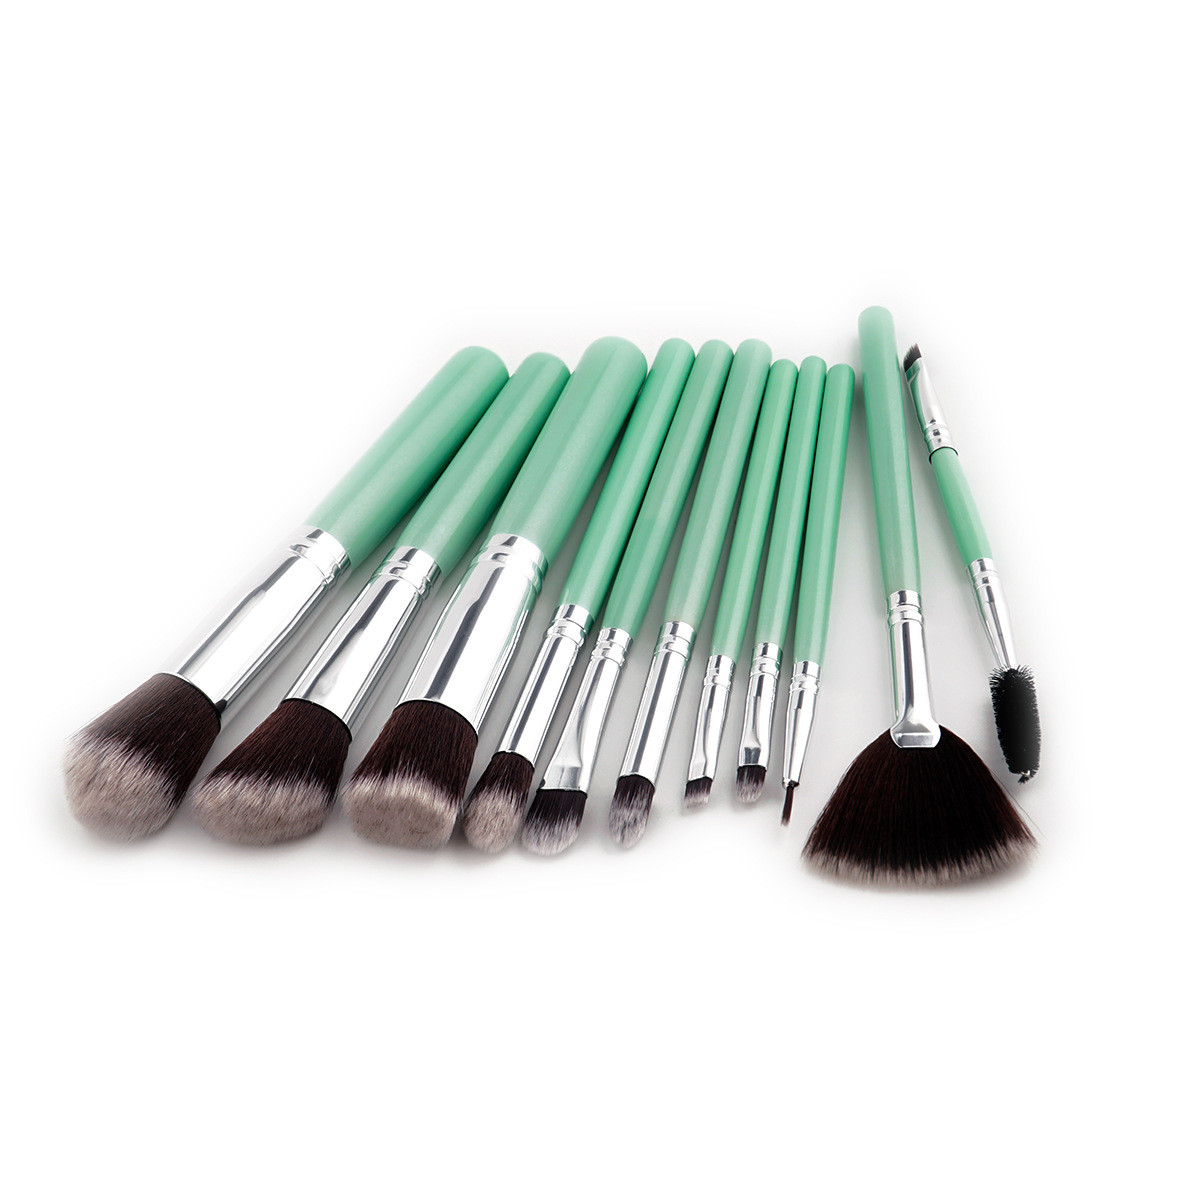 Pro 11Pcs Set Makeup Brushes Mint Green Handle Powder Foundation Eyeshadow Eyeliner Lip Cosmetics Tools Blush Brushes Hot Style mac splash and last pro longwear powder устойчивая компактная пудра dark tan